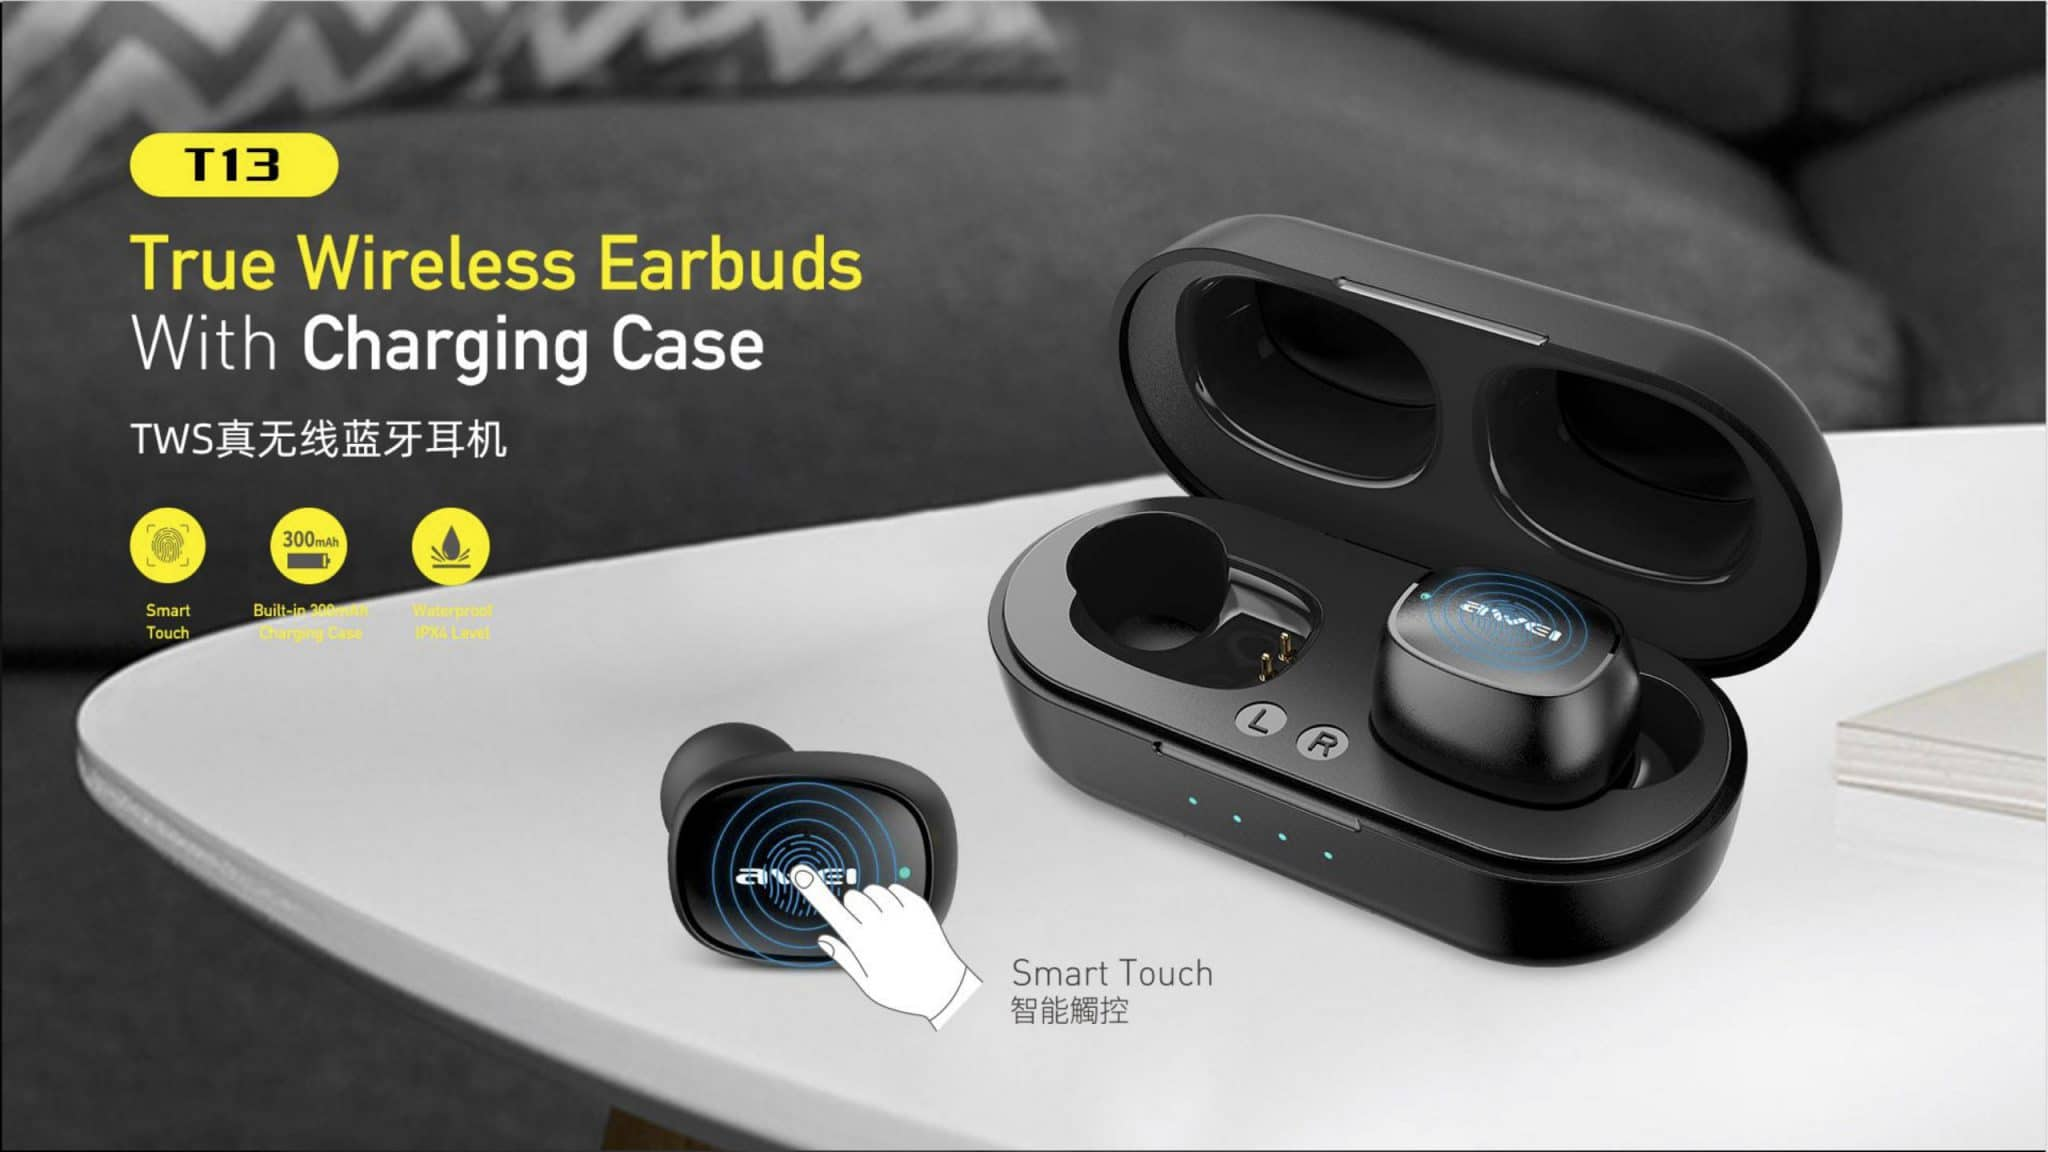 Awei True Wireless Earbuds With Charging Case T13